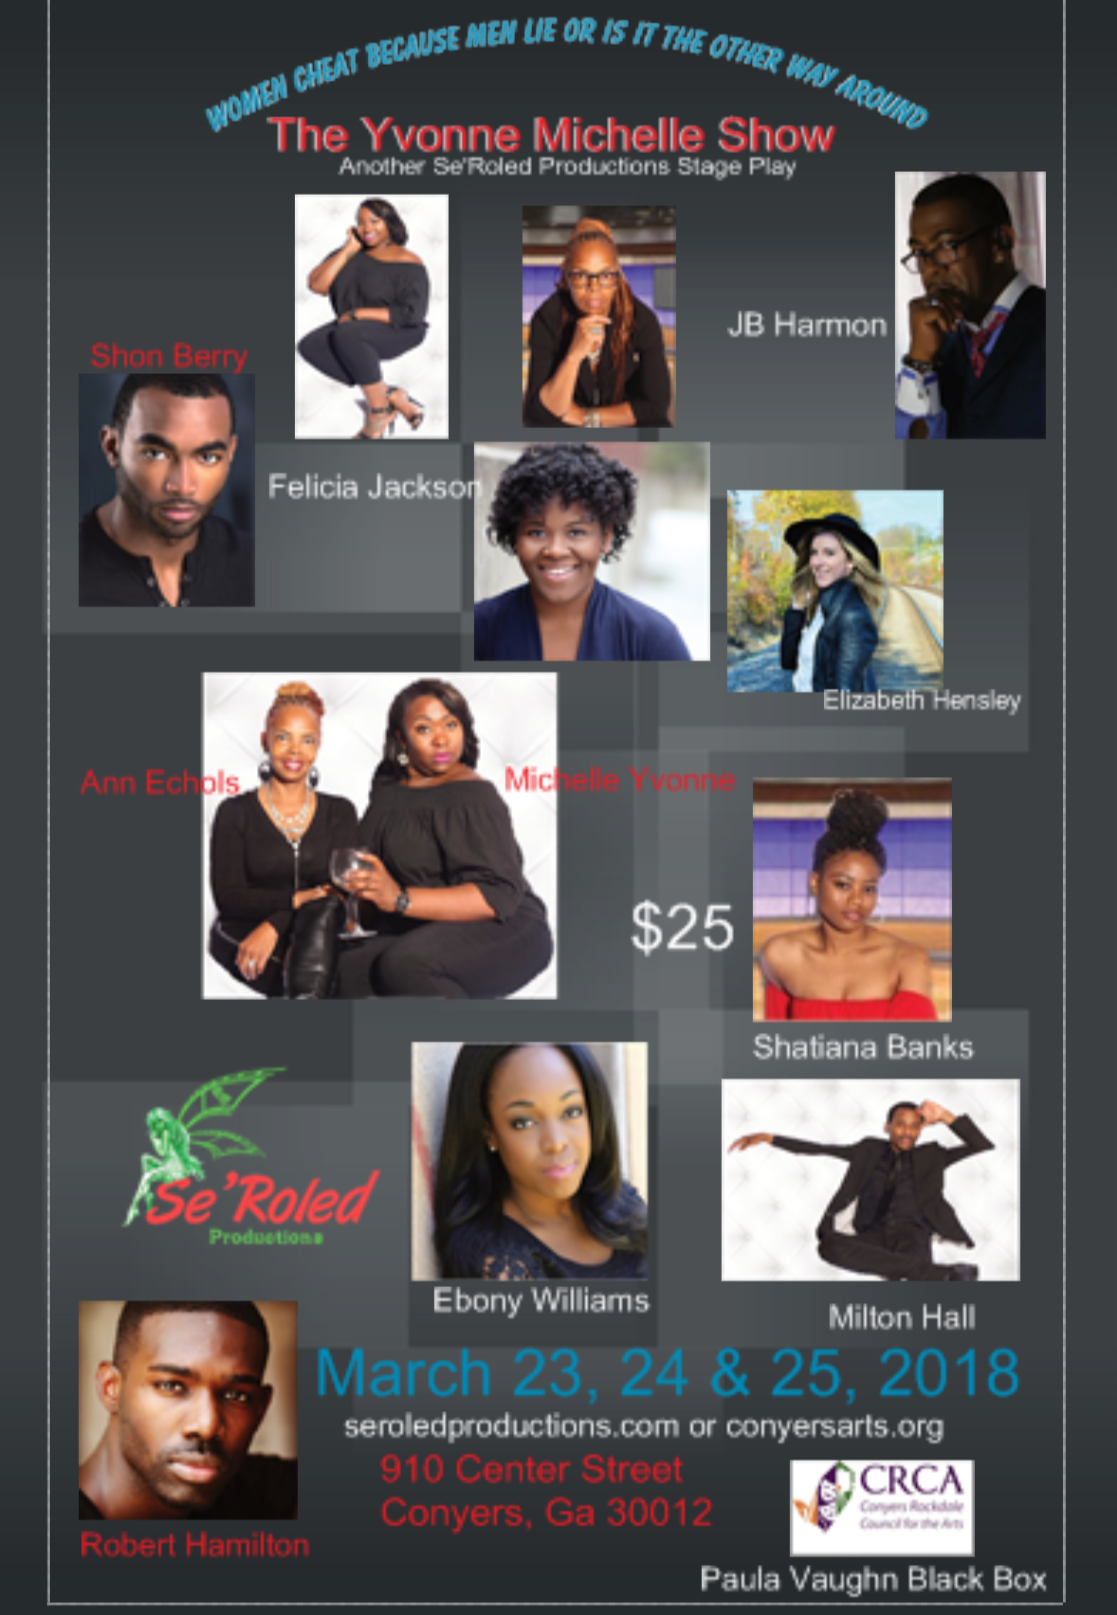 3/23@8 The Yvonne Mitchell Show: Do Women Cheat Because Men Lie, Or is it the Other way Around?